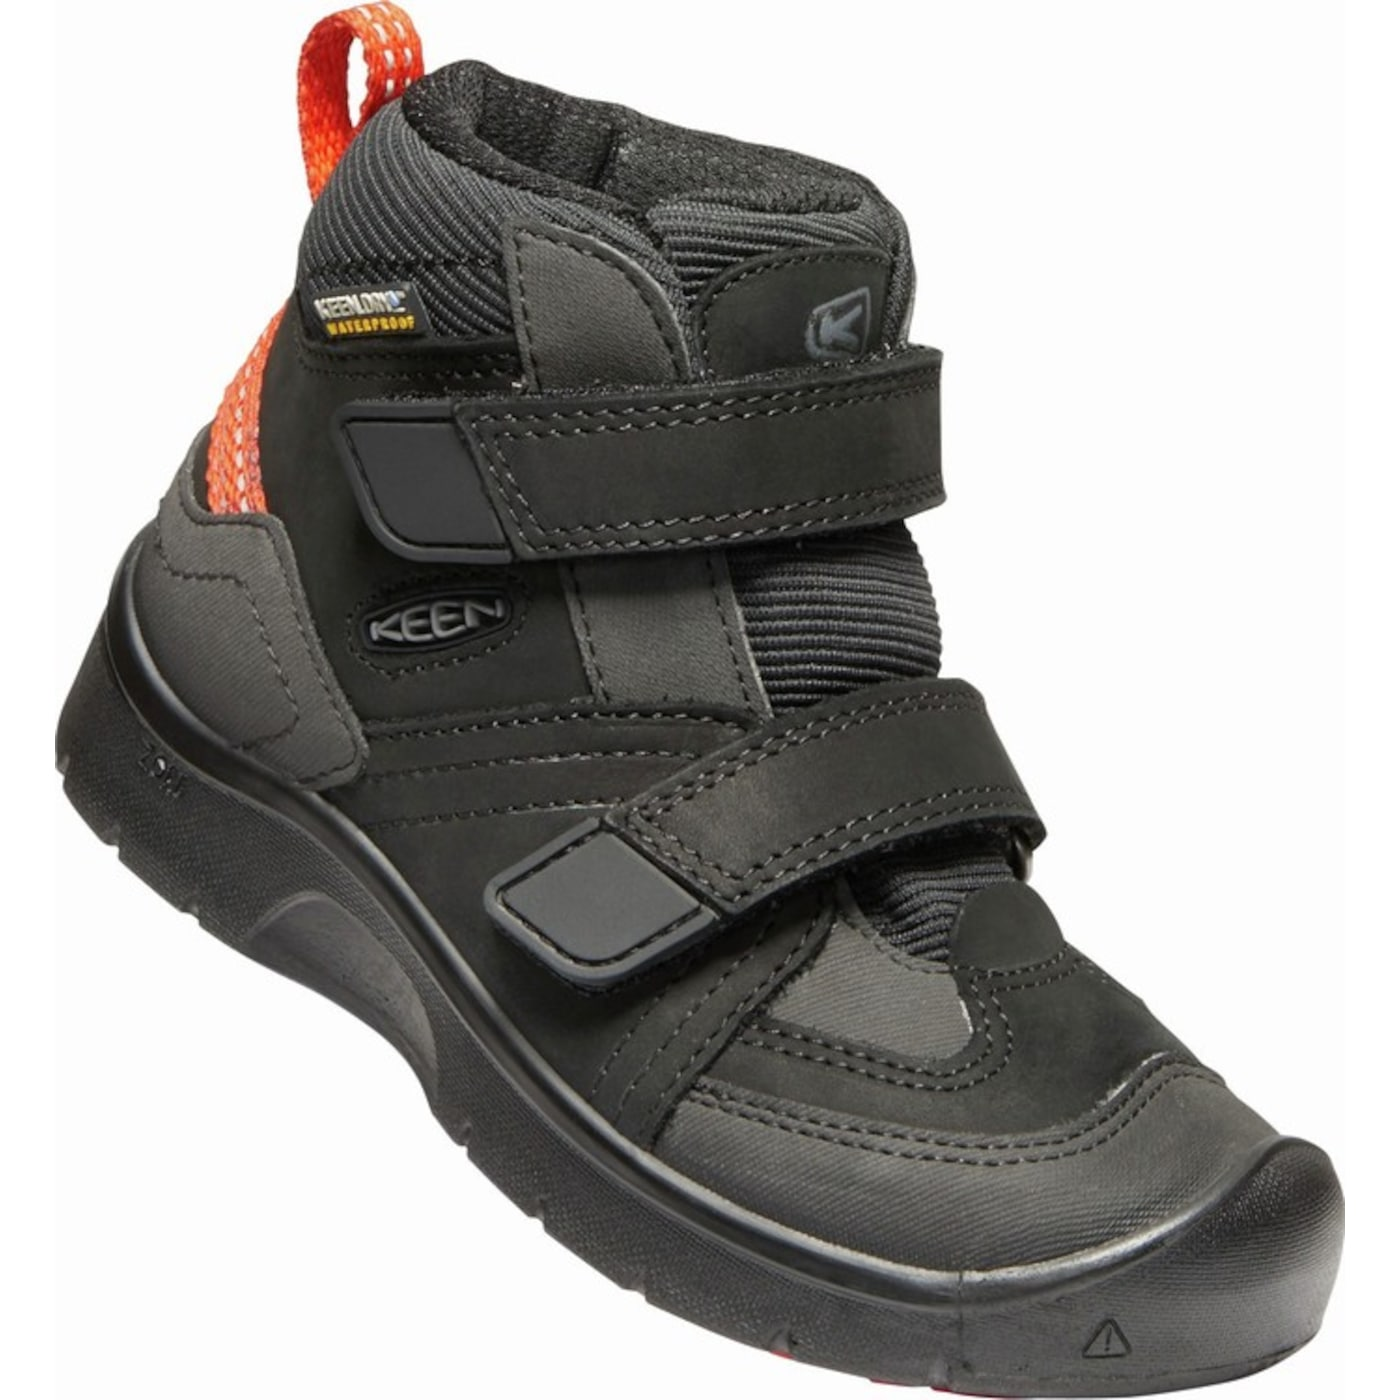 Kid's boots KEEN HIKEPORT MID STRAP WP